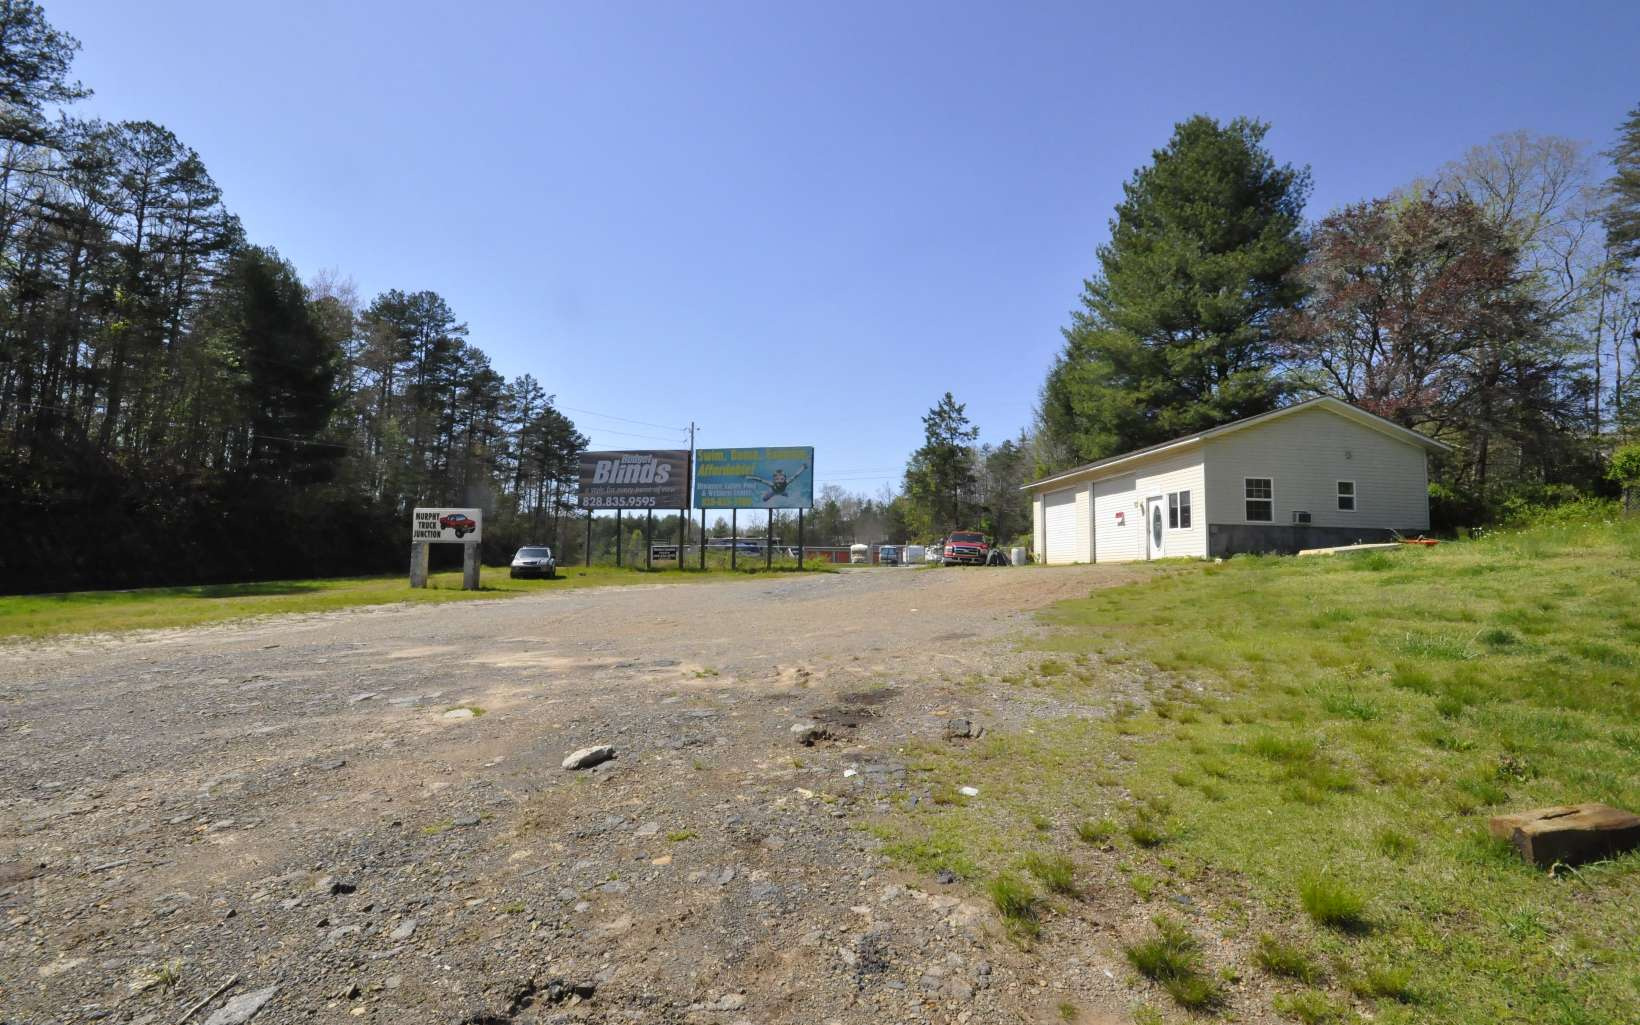 North Carolina mountain commercial property,NC commercial real estate,1425 BLAIRSVILLE HWY,Murphy,North Carolina 28906,Commercial,BLAIRSVILLE HWY Advantage Chatuge Realty